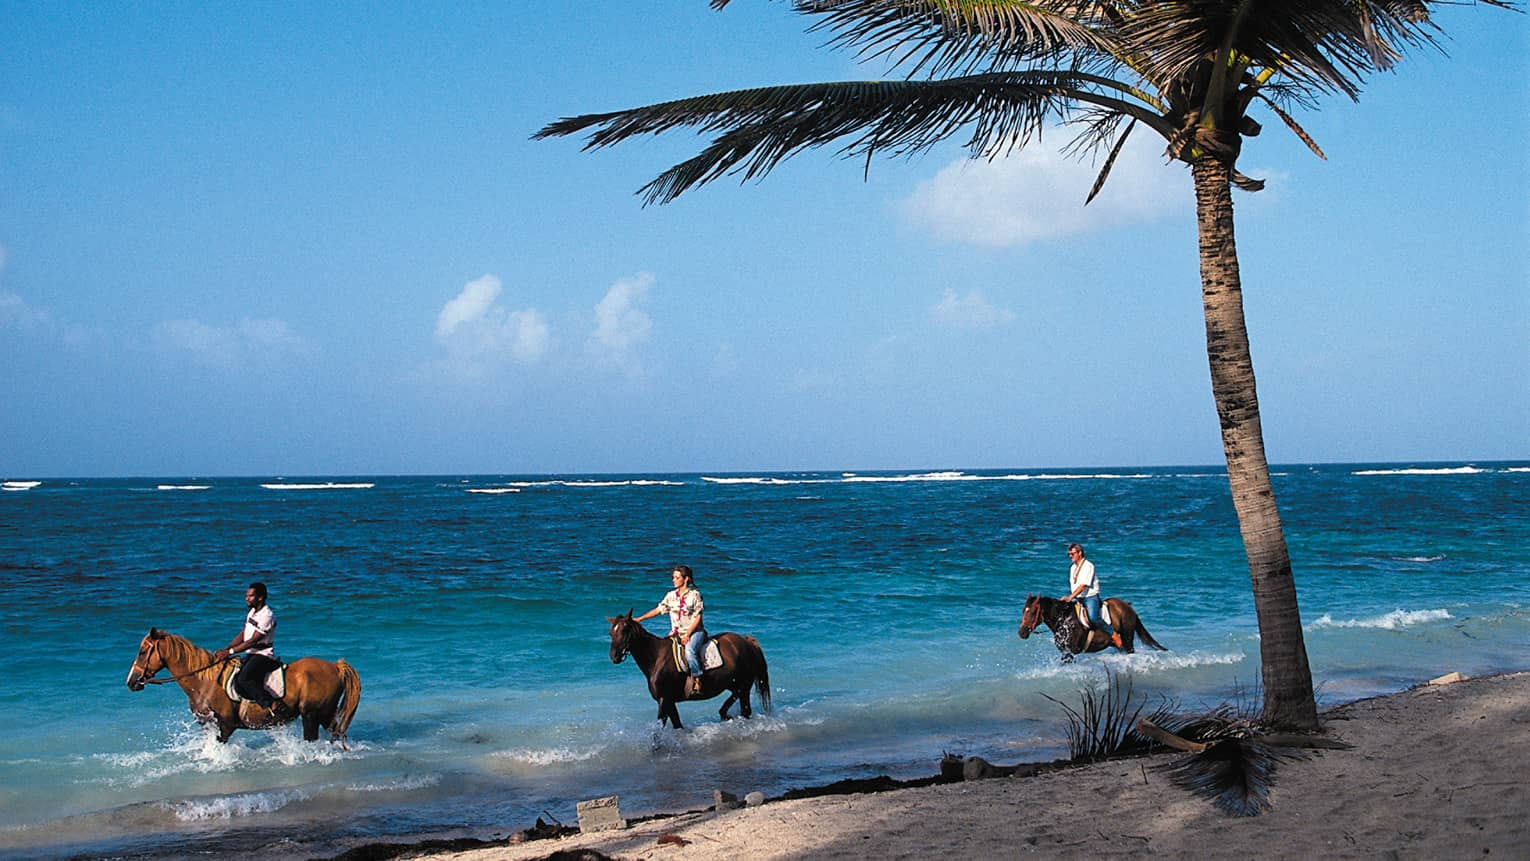 Three people ride horses through water along beach under palm tree